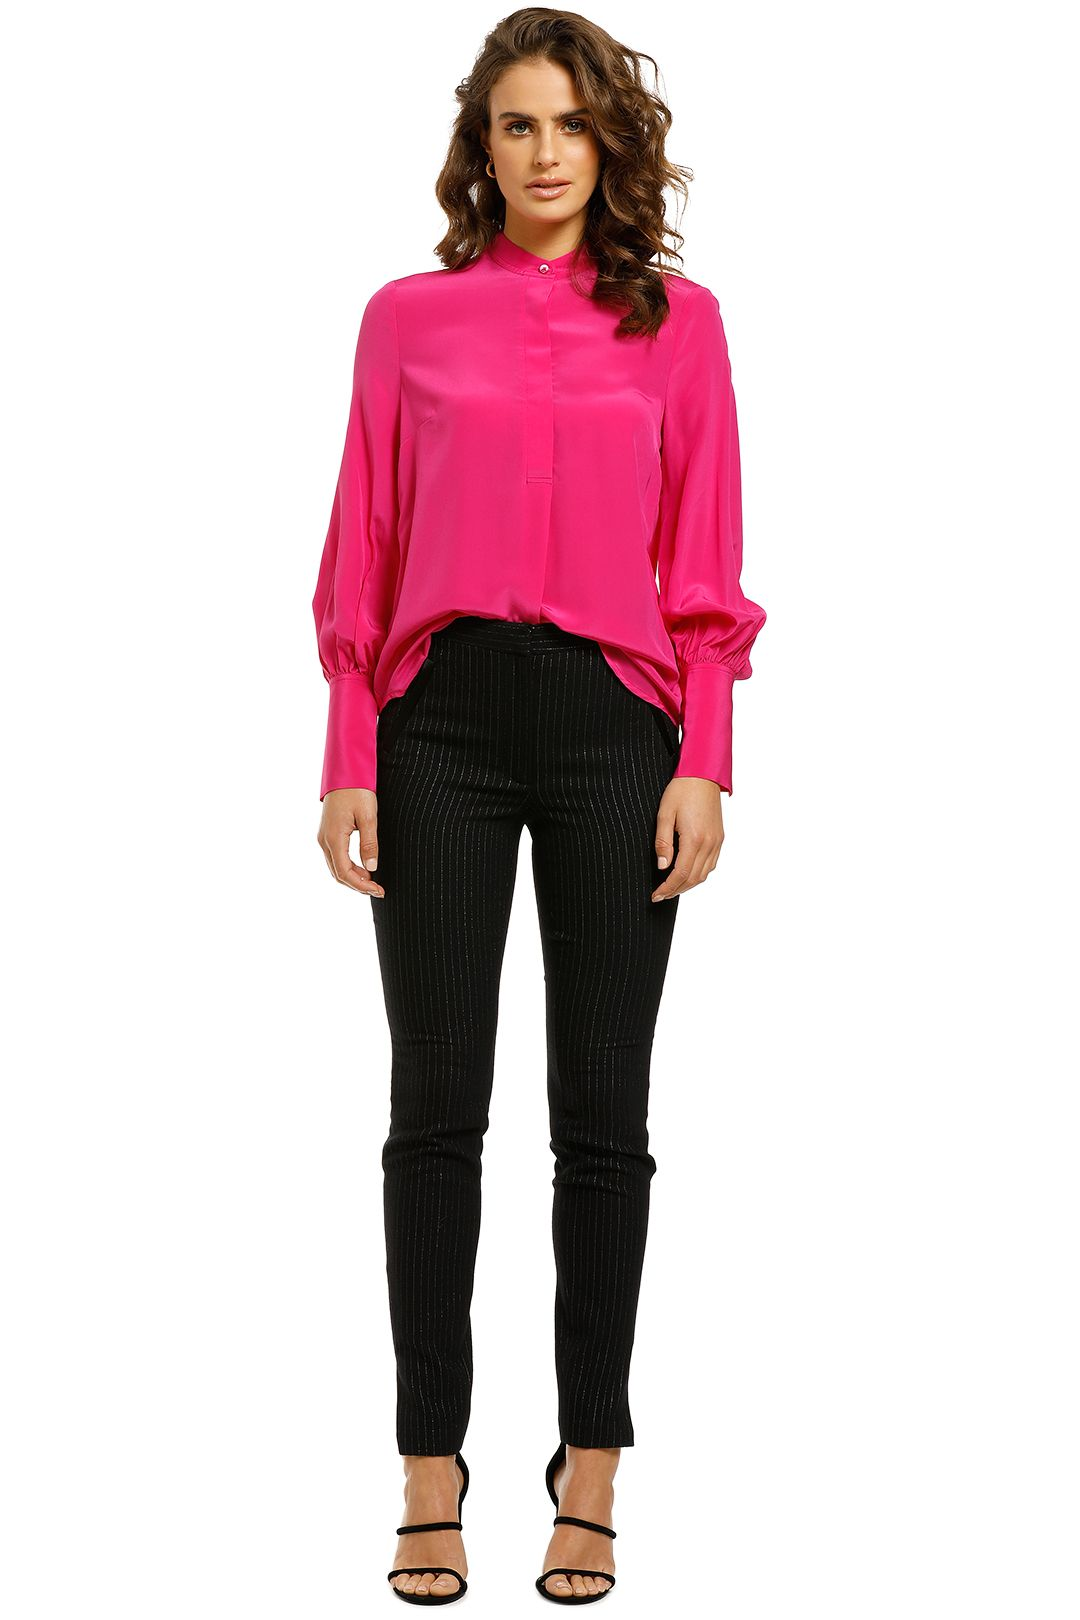 Rebecca-Vallance-Lillian-LS-Blouse-Hot Pink-Front